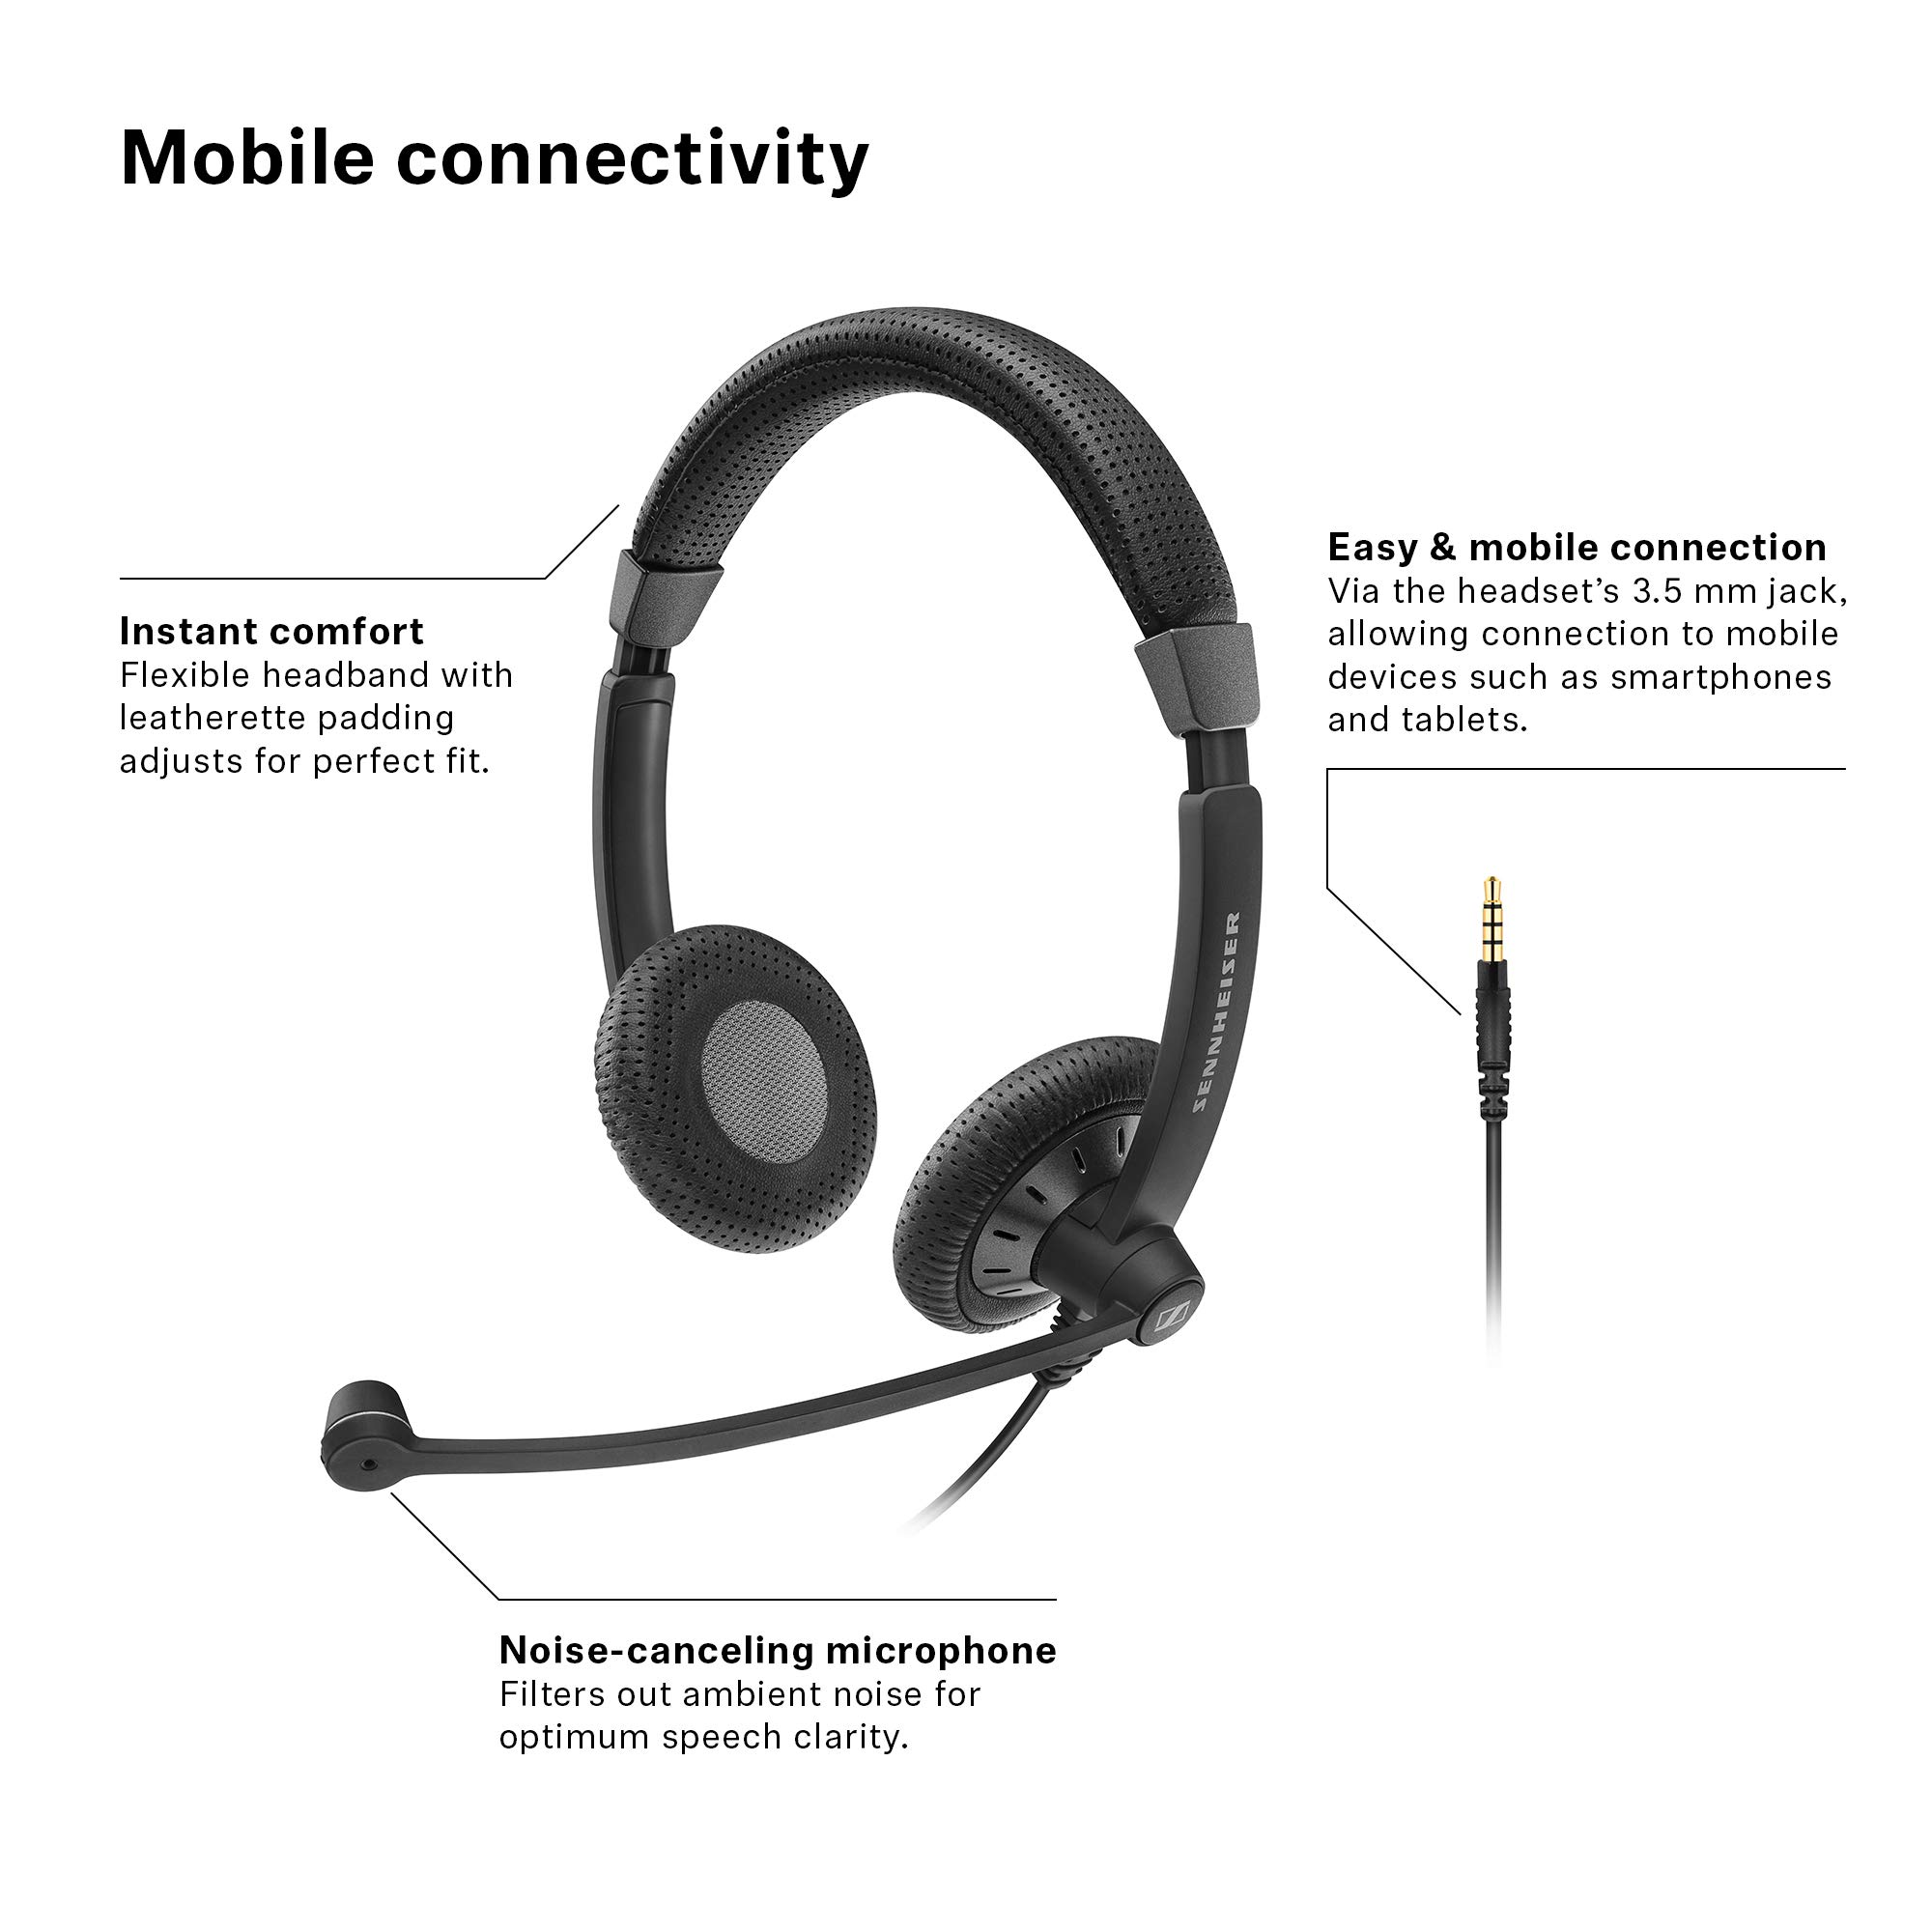 Sennheiser SC 75 (507085) - Double-Sided Business Headset | For Mobile Phone and Tablet | with HD Sound & Noise-Cancelling Microphone (Black) by Sennheiser Enterprise Solution (Image #2)